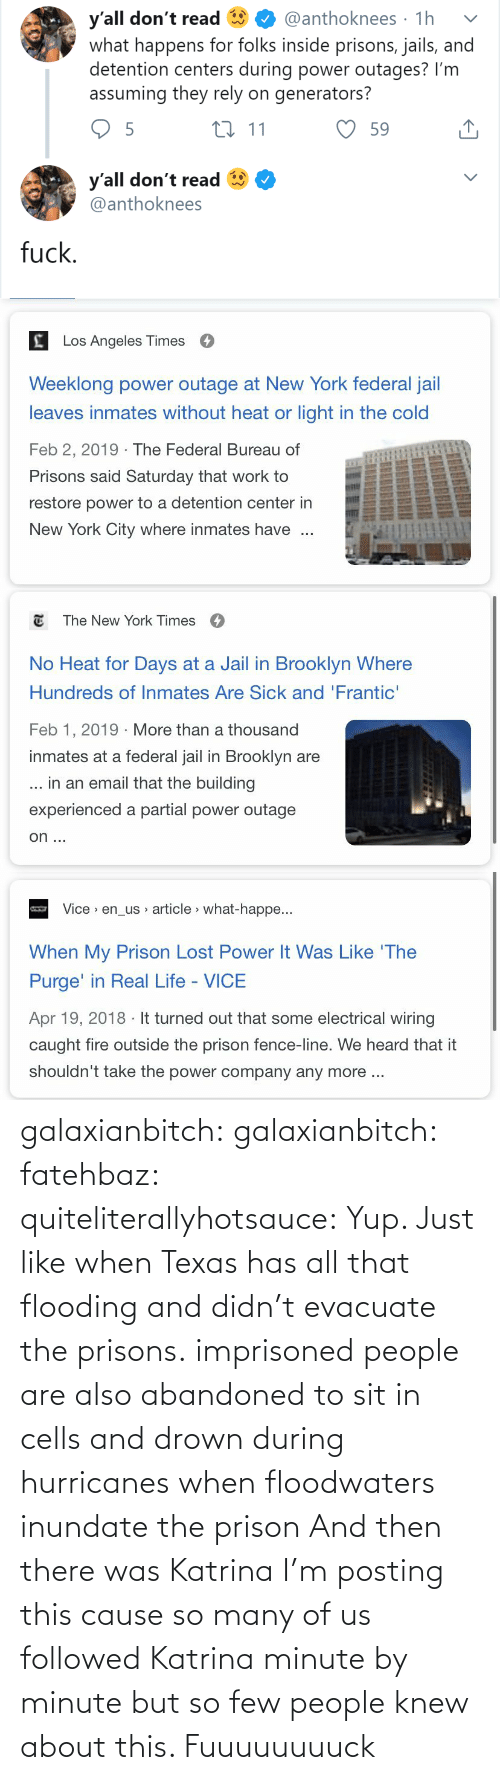 York City: y'all don't read  what happens for folks inside prisons, jails, and  detention centers during power outages? I'm  assuming they rely on generators?  @anthoknees · 1h  27 11  59  y'all don't read  @anthoknees  fuck.   Los Angeles Times  Weeklong power outage at New York federal jail  leaves inmates without heat or light in the cold  Feb 2, 2019 · The Federal Bureau of  Prisons said Saturday that work to  restore power to a detention center in  New York City where inmates have   E The New York Times  O  No Heat for Days at a Jail in Brooklyn Where  Hundreds of Inmates Are Sick and 'Frantic'  Feb 1, 2019 · More than a thousand  inmates at a federal jail in Brooklyn are  ... in an email that the building  experienced a partial power outage  on ...   Vice > en_us article > what-happe...  When My Prison Lost Power It Was Like 'The  Purge' in Real Life - VICE  Apr 19, 2018 · It turned out that some electrical wiring  caught fire outside the prison fence-line. We heard that it  shouldn't take the power company any more .. galaxianbitch: galaxianbitch:   fatehbaz:  quiteliterallyhotsauce:   Yup. Just like when Texas has all that flooding and didn't evacuate the prisons.   imprisoned people are also abandoned to sit in cells and drown during hurricanes when floodwaters inundate the prison   And then there was Katrina        I'm posting this cause so many of us followed Katrina minute by minute but so few people knew about this.    Fuuuuuuuuck